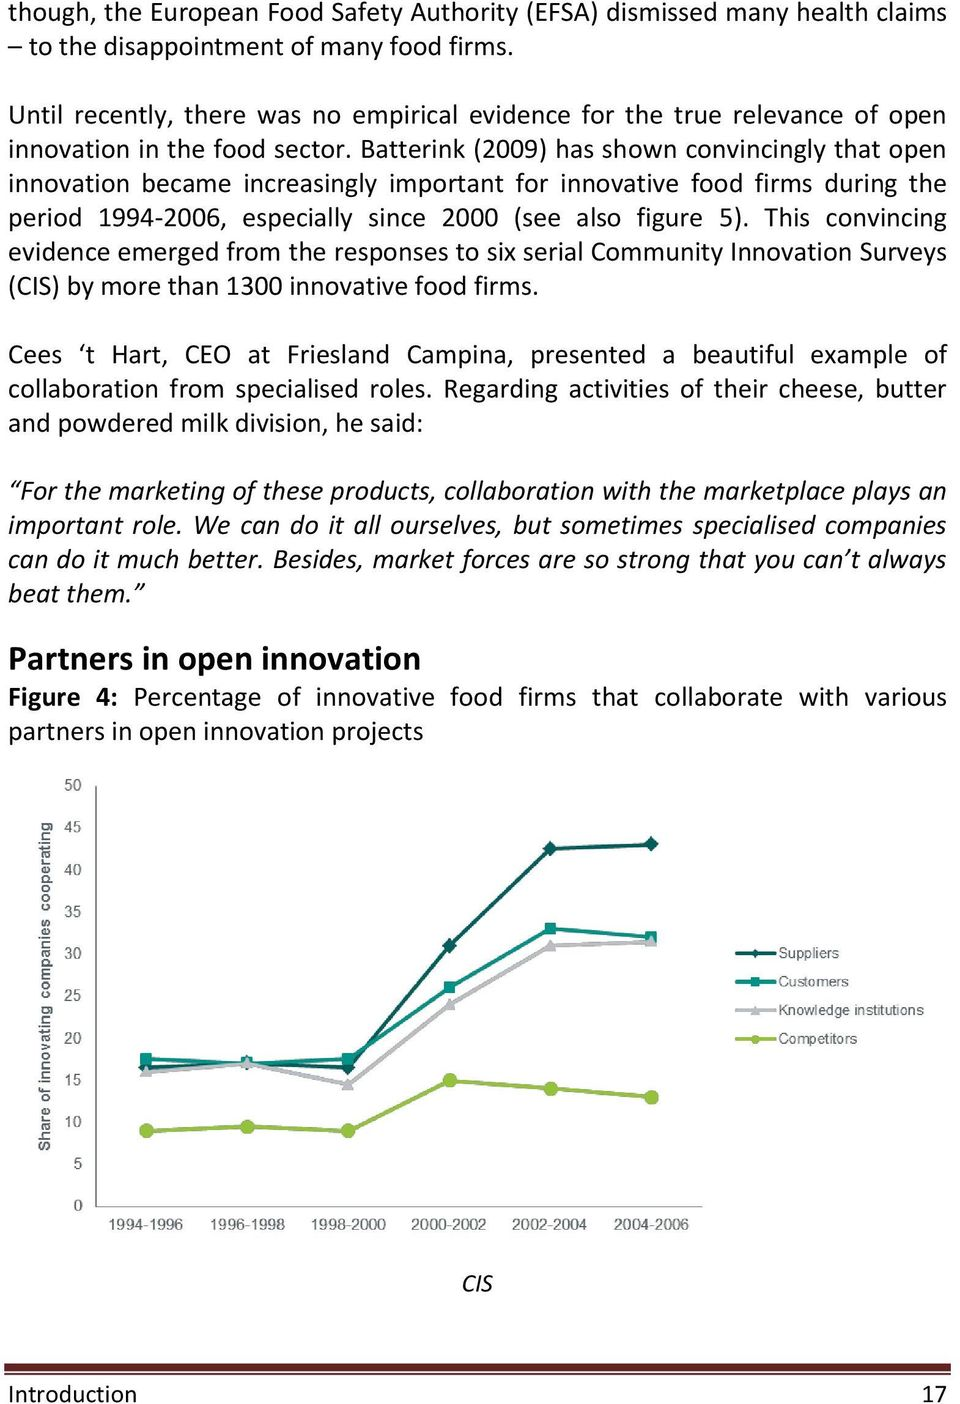 Batterink (2009) has shown convincingly that open innovation became increasingly important for innovative food firms during the period 1994-2006, especially since 2000 (see also figure 5).